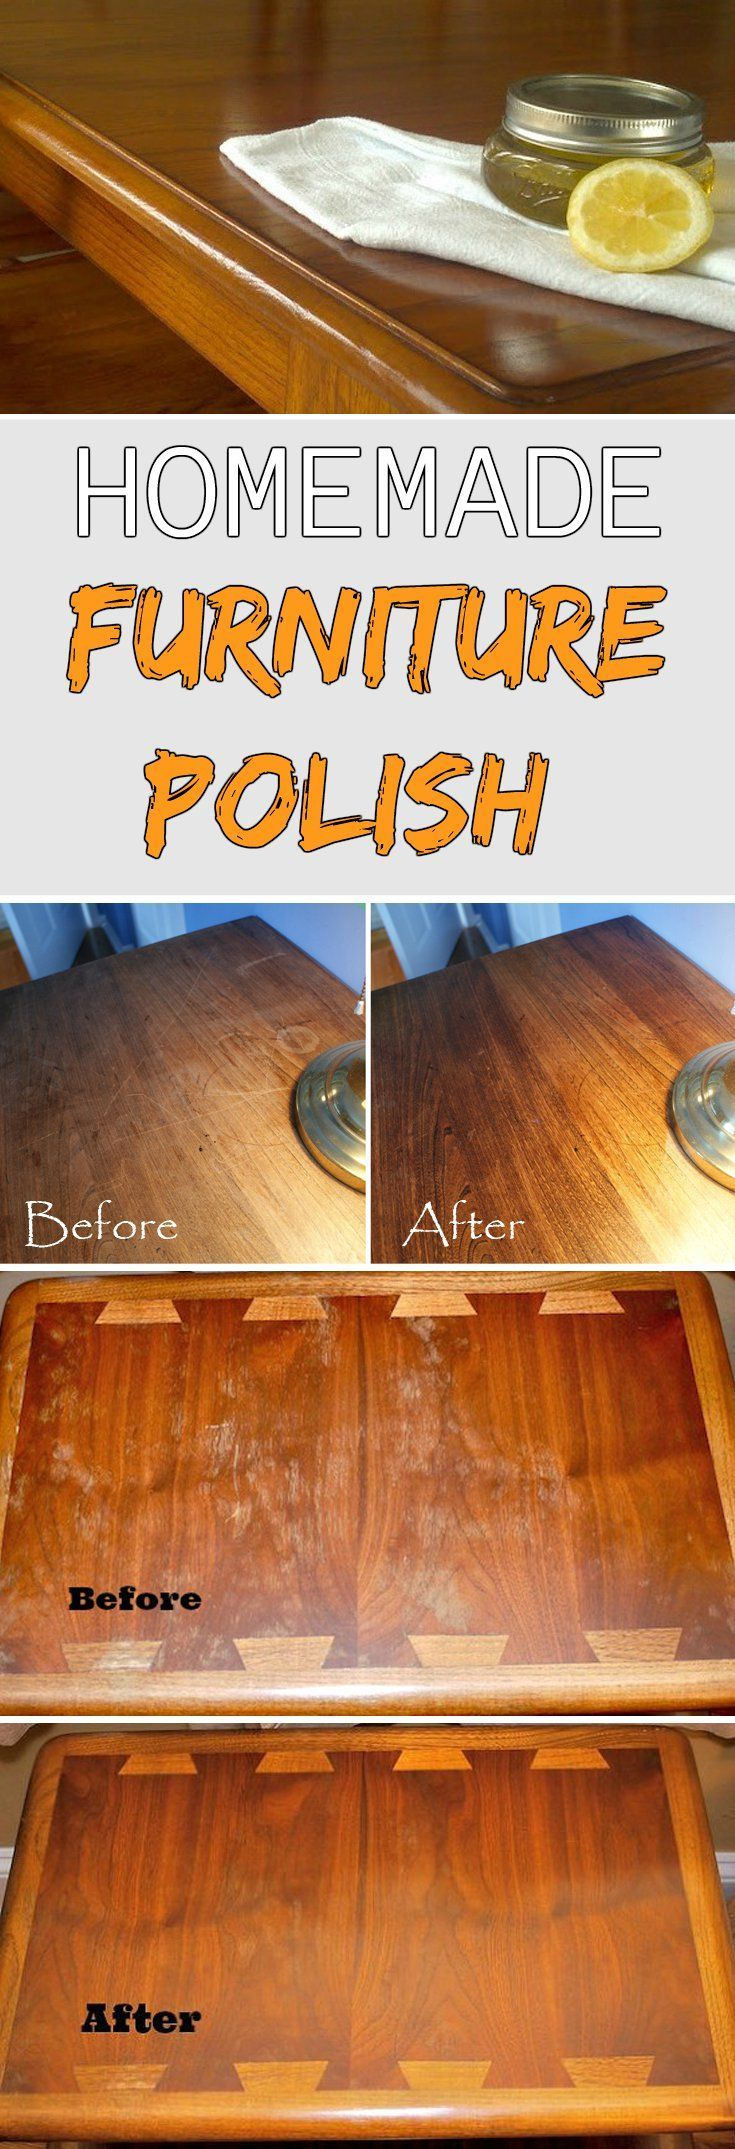 Homemade Furniture Polish. 3/4 cup olive oil, 1/4 cup distilled white vinegar, 1 teaspoon lemon juice